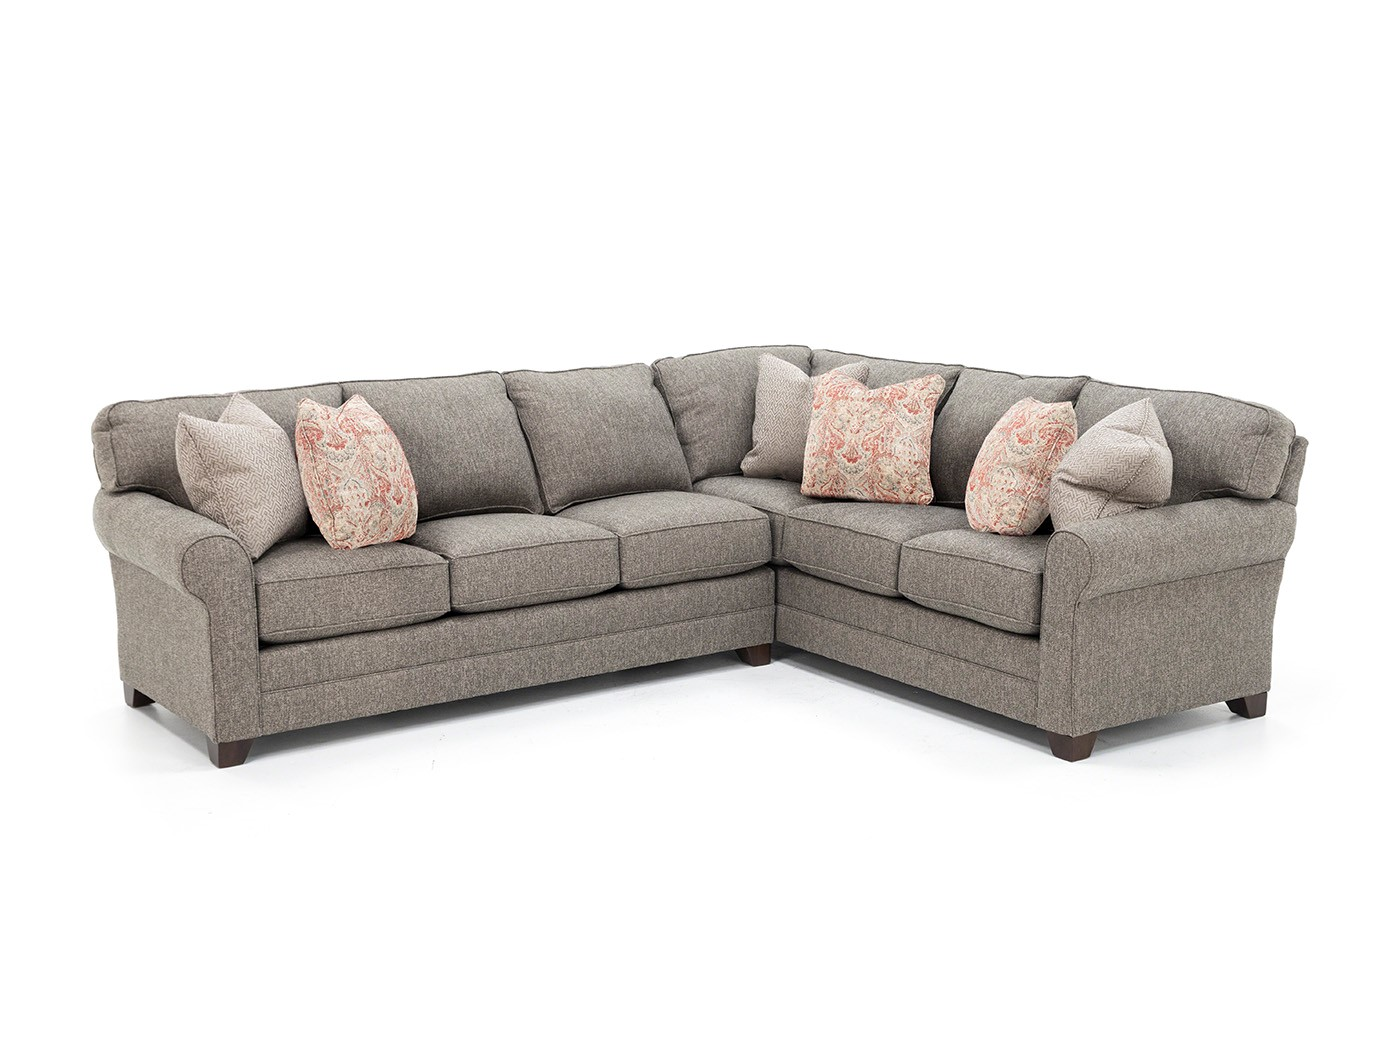 Bentley 2-Pc Sectional